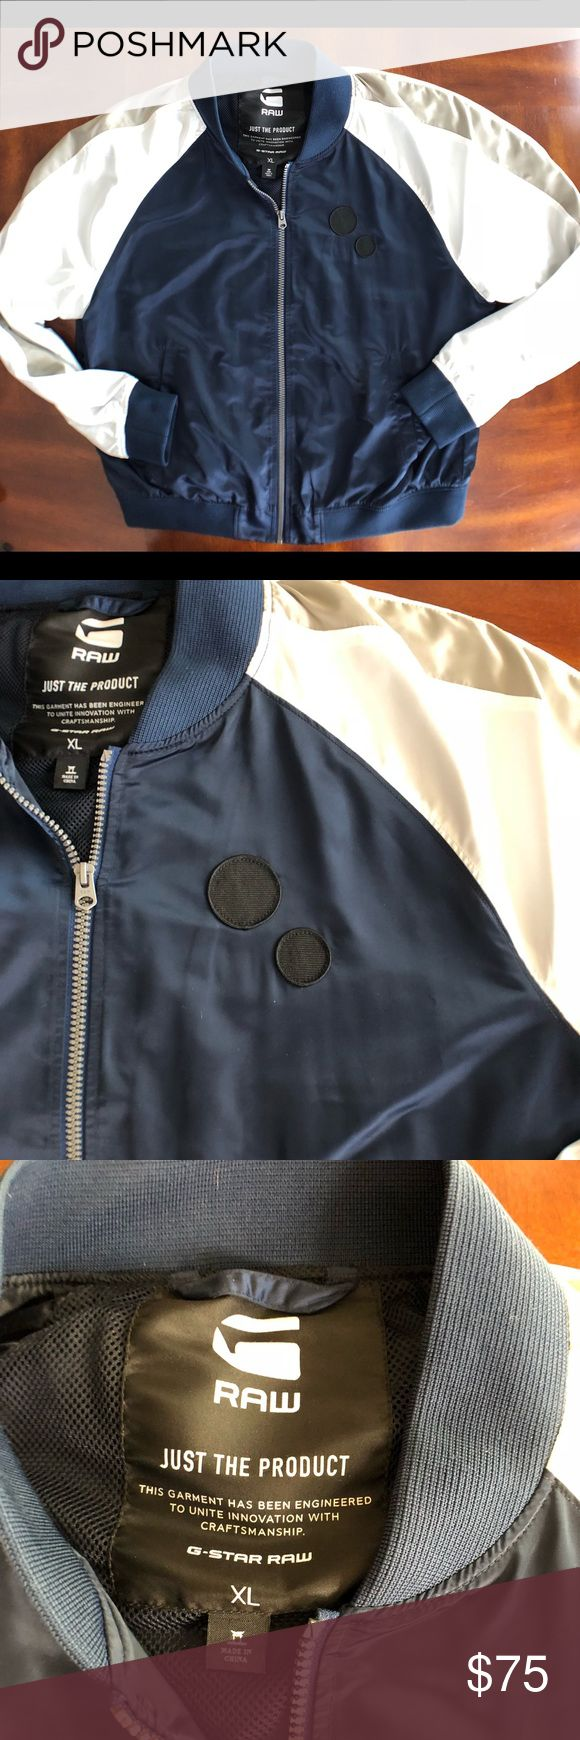 G-Star satin Bomber jacket Men's G-Star Raw retro style satin Bomber jacket very nice used condition. Very hard to find piece, looks and feels amazing G-Star Jackets & Coats Bomber & Varsity